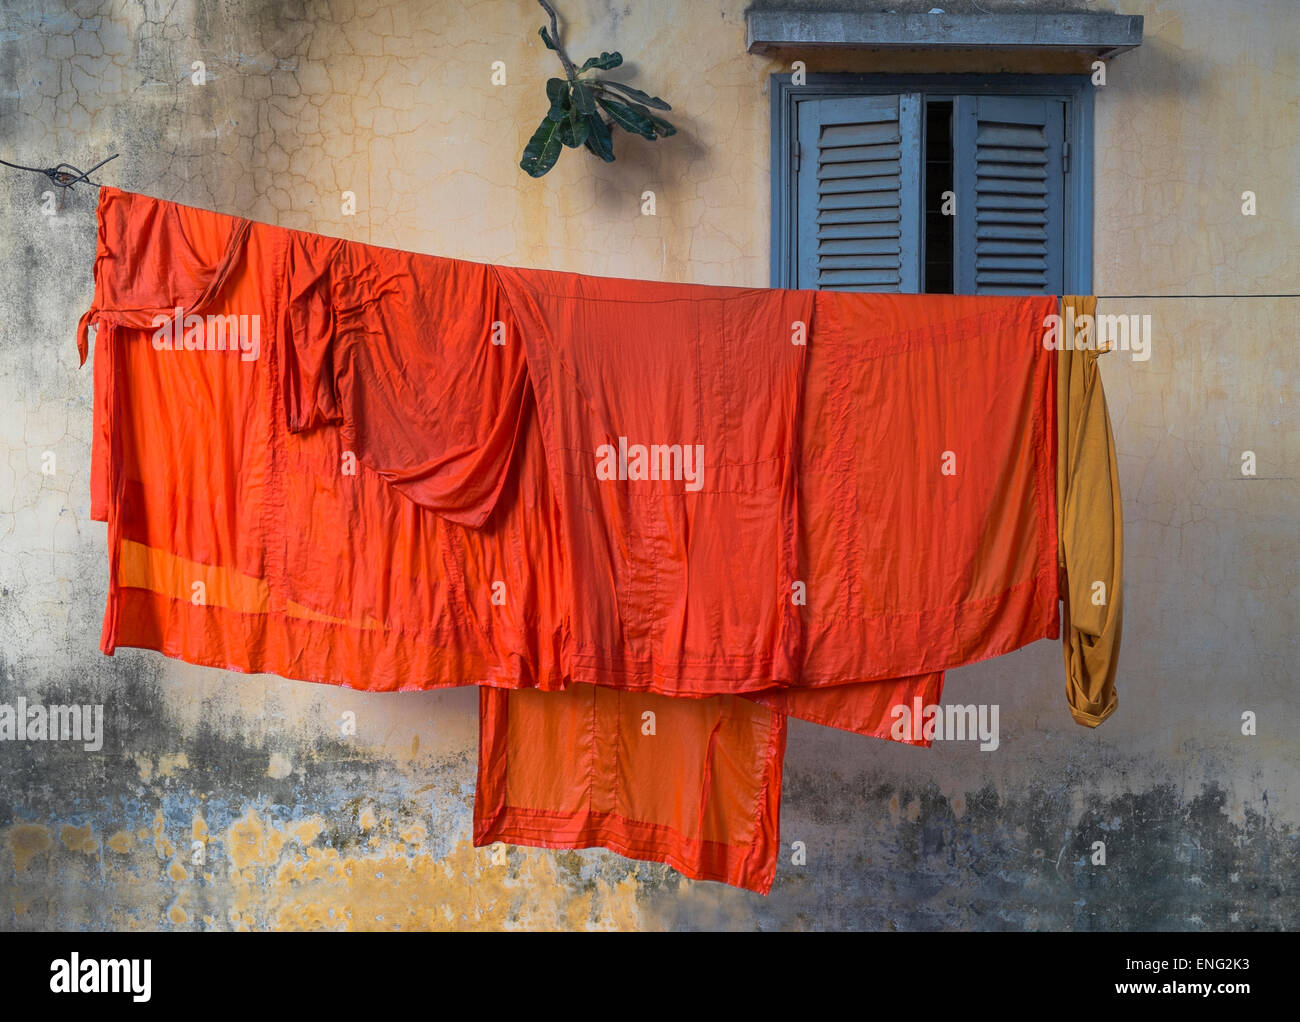 Buddhist monk robes hanging on clothesline - Stock Image